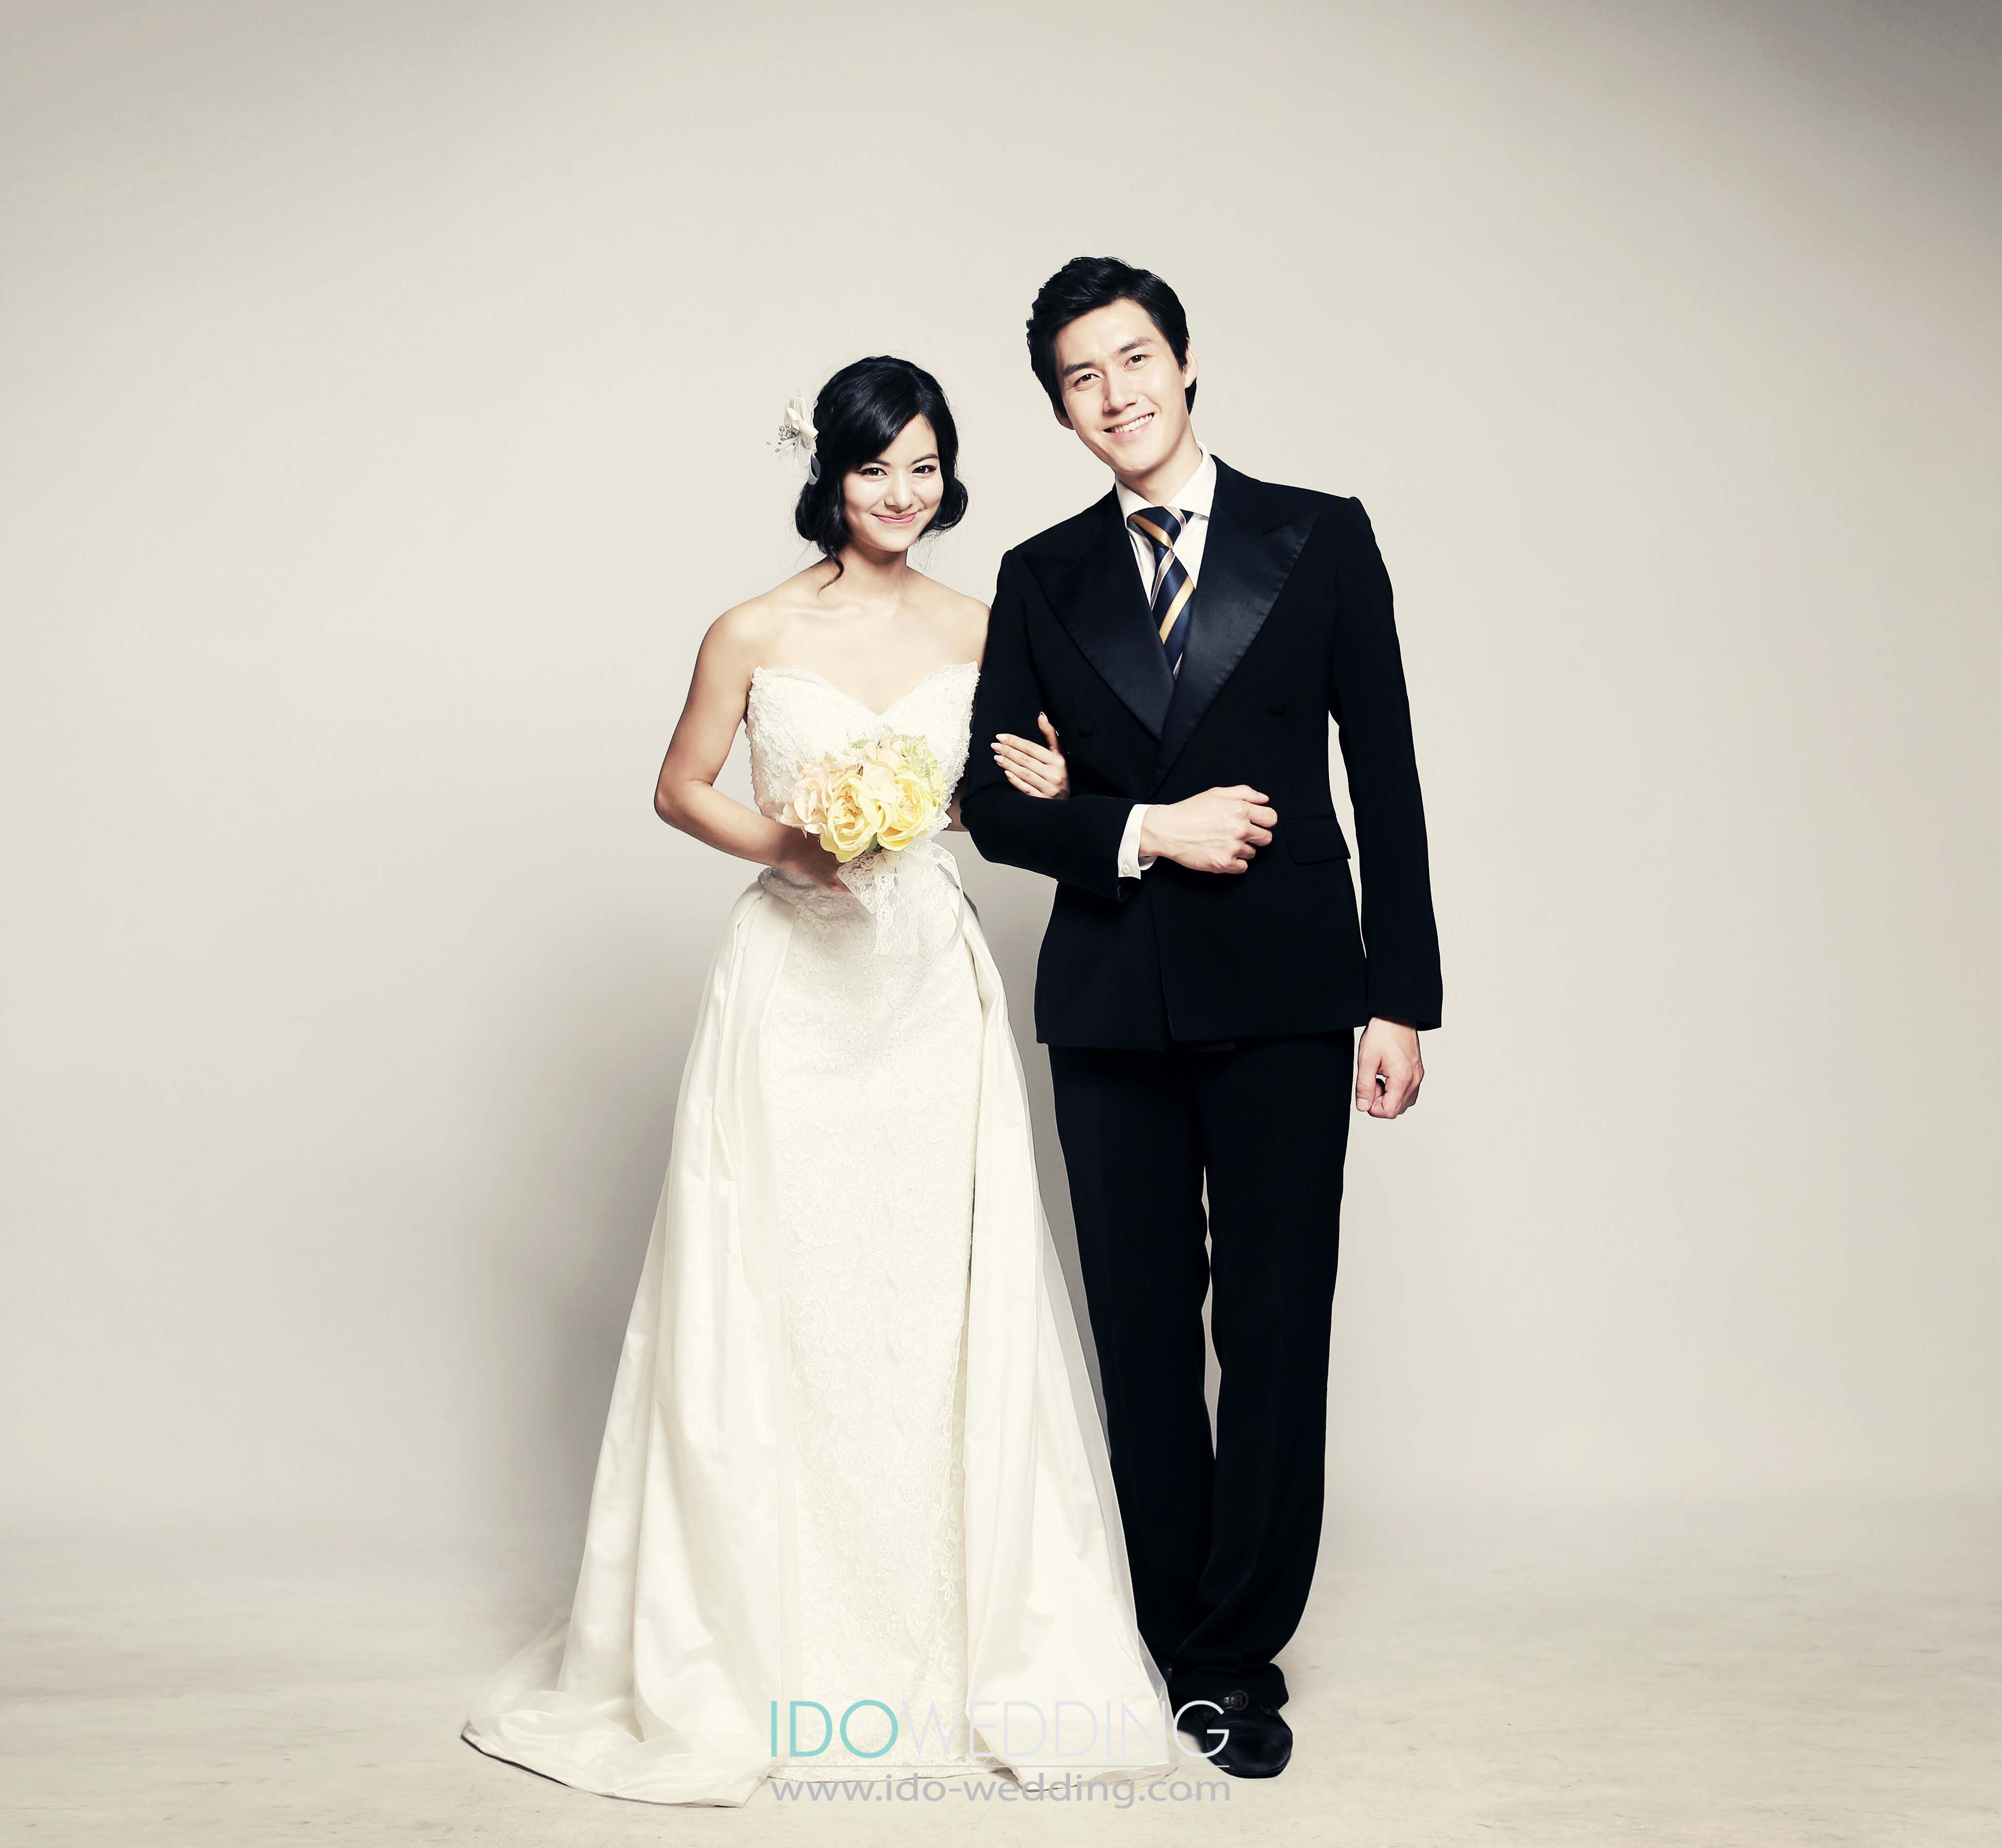 Korean Wedding Photography Google Search Scenes Pinterest And Makeup